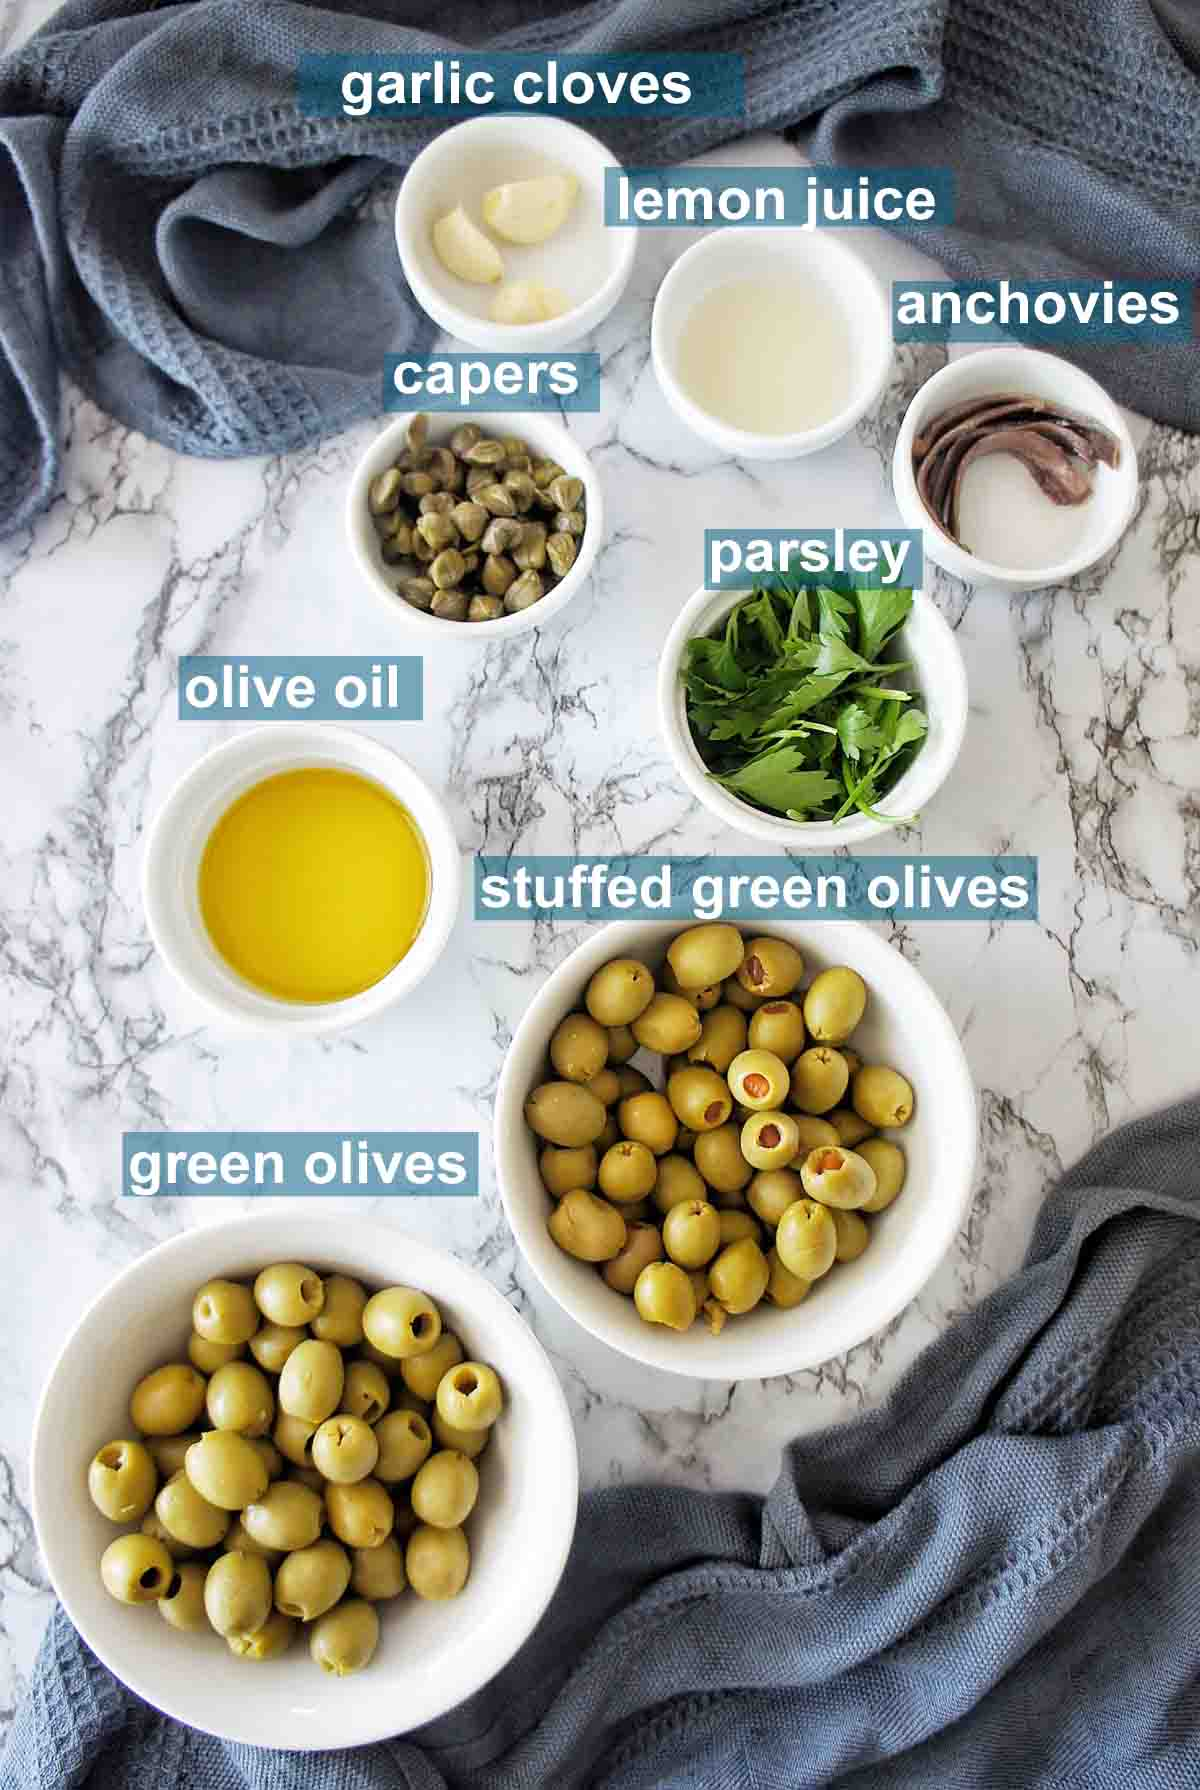 Ingredients for green olive tapenade set out with text overlay